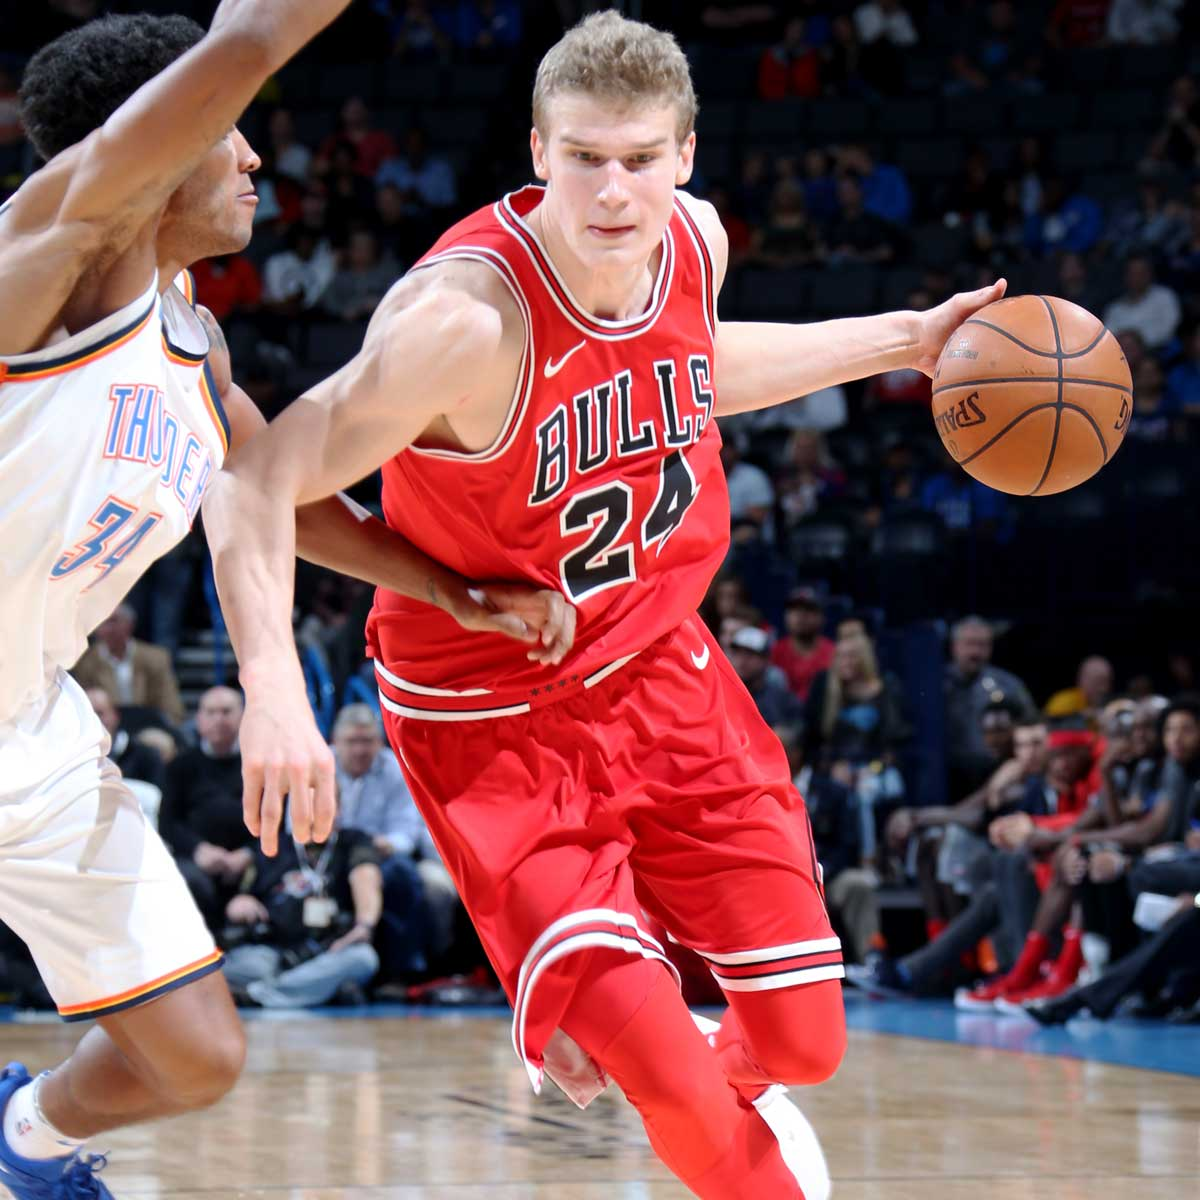 Lauri Markkanen #24 of the Chicago Bulls handles the ball during the game against the Oklahoma City Thunder on November 15, 2017 at Chesapeake Energy Arena in Oklahoma City, Oklahoma.